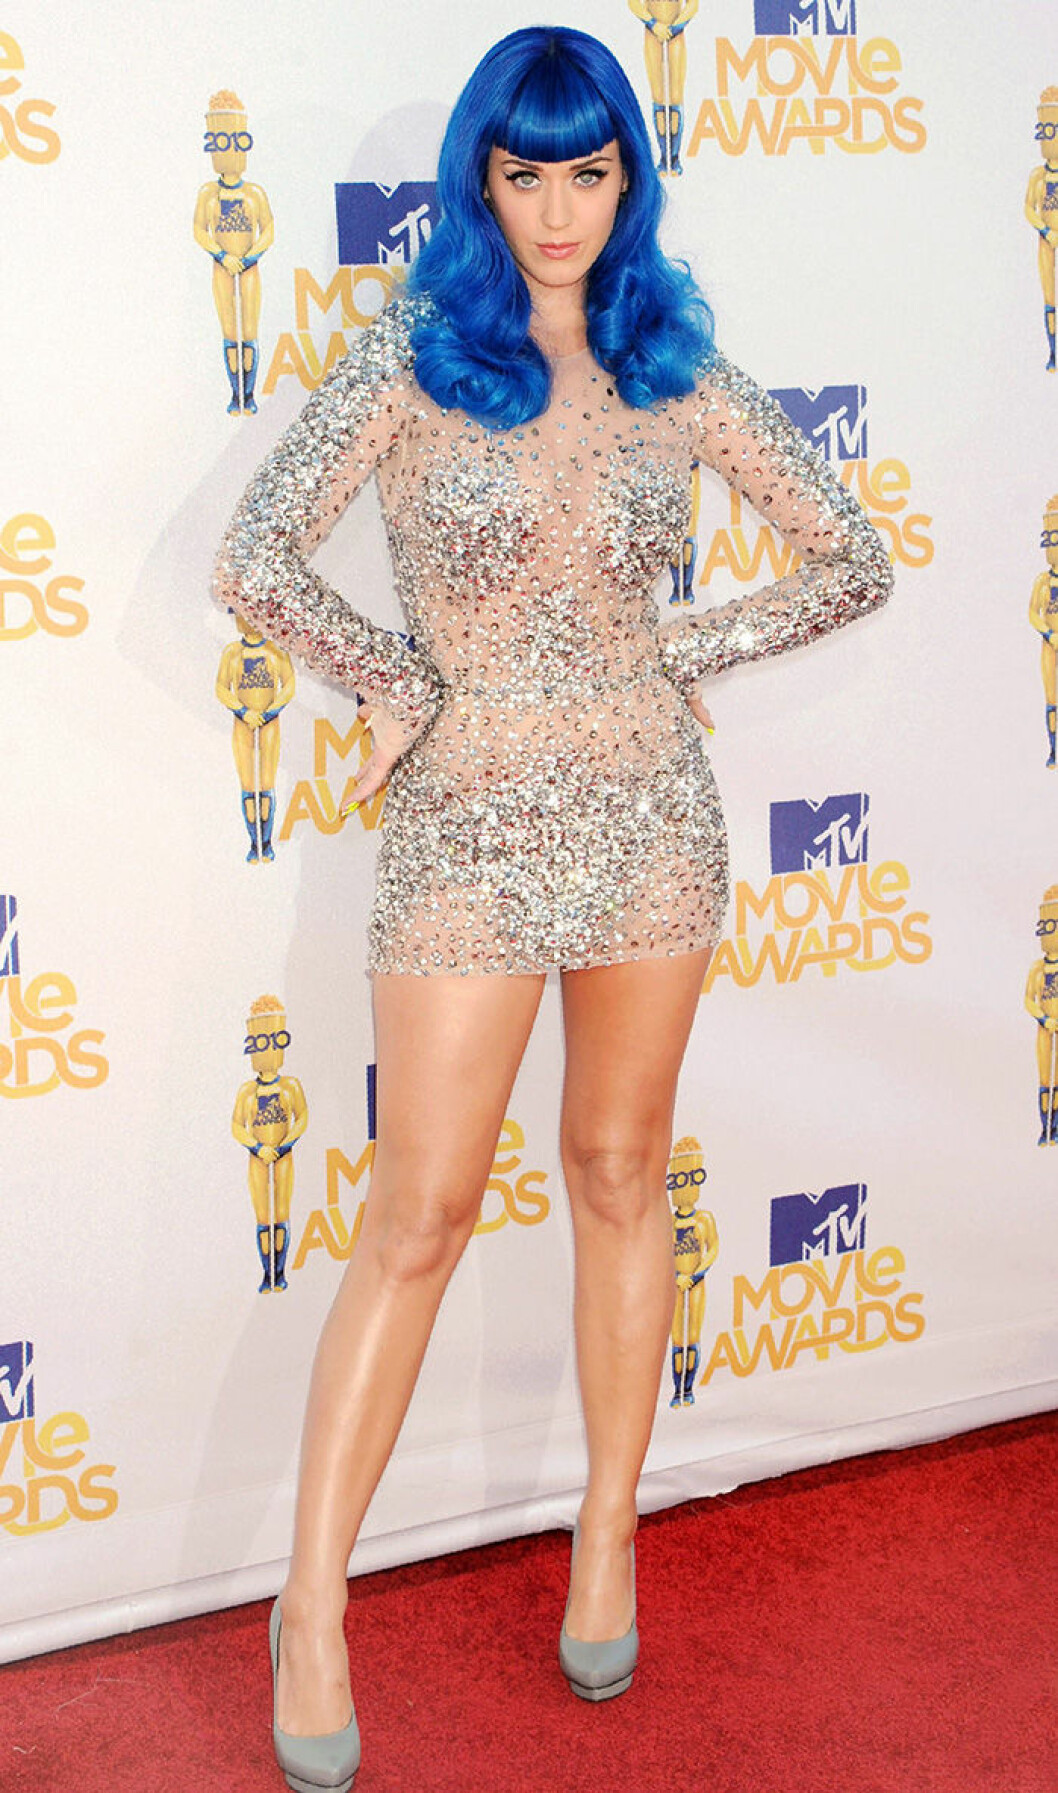 En bild på sångerskan Katy Perry på MTV Video Music Awards 2010.